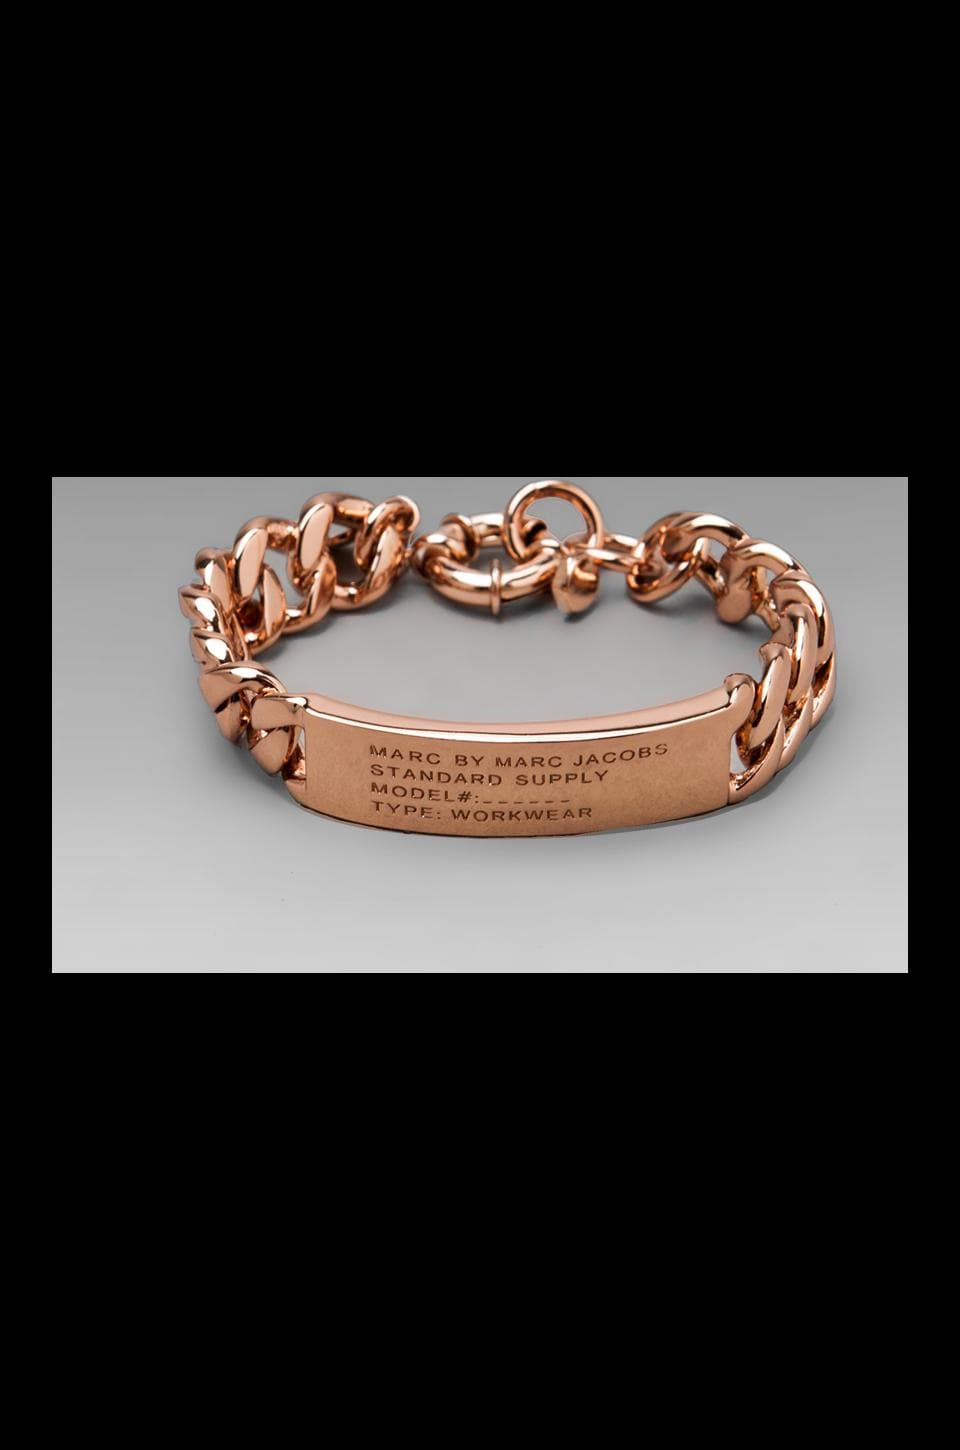 Marc by Marc Jacobs Standard Supply ID Bracelet in Rose Gold